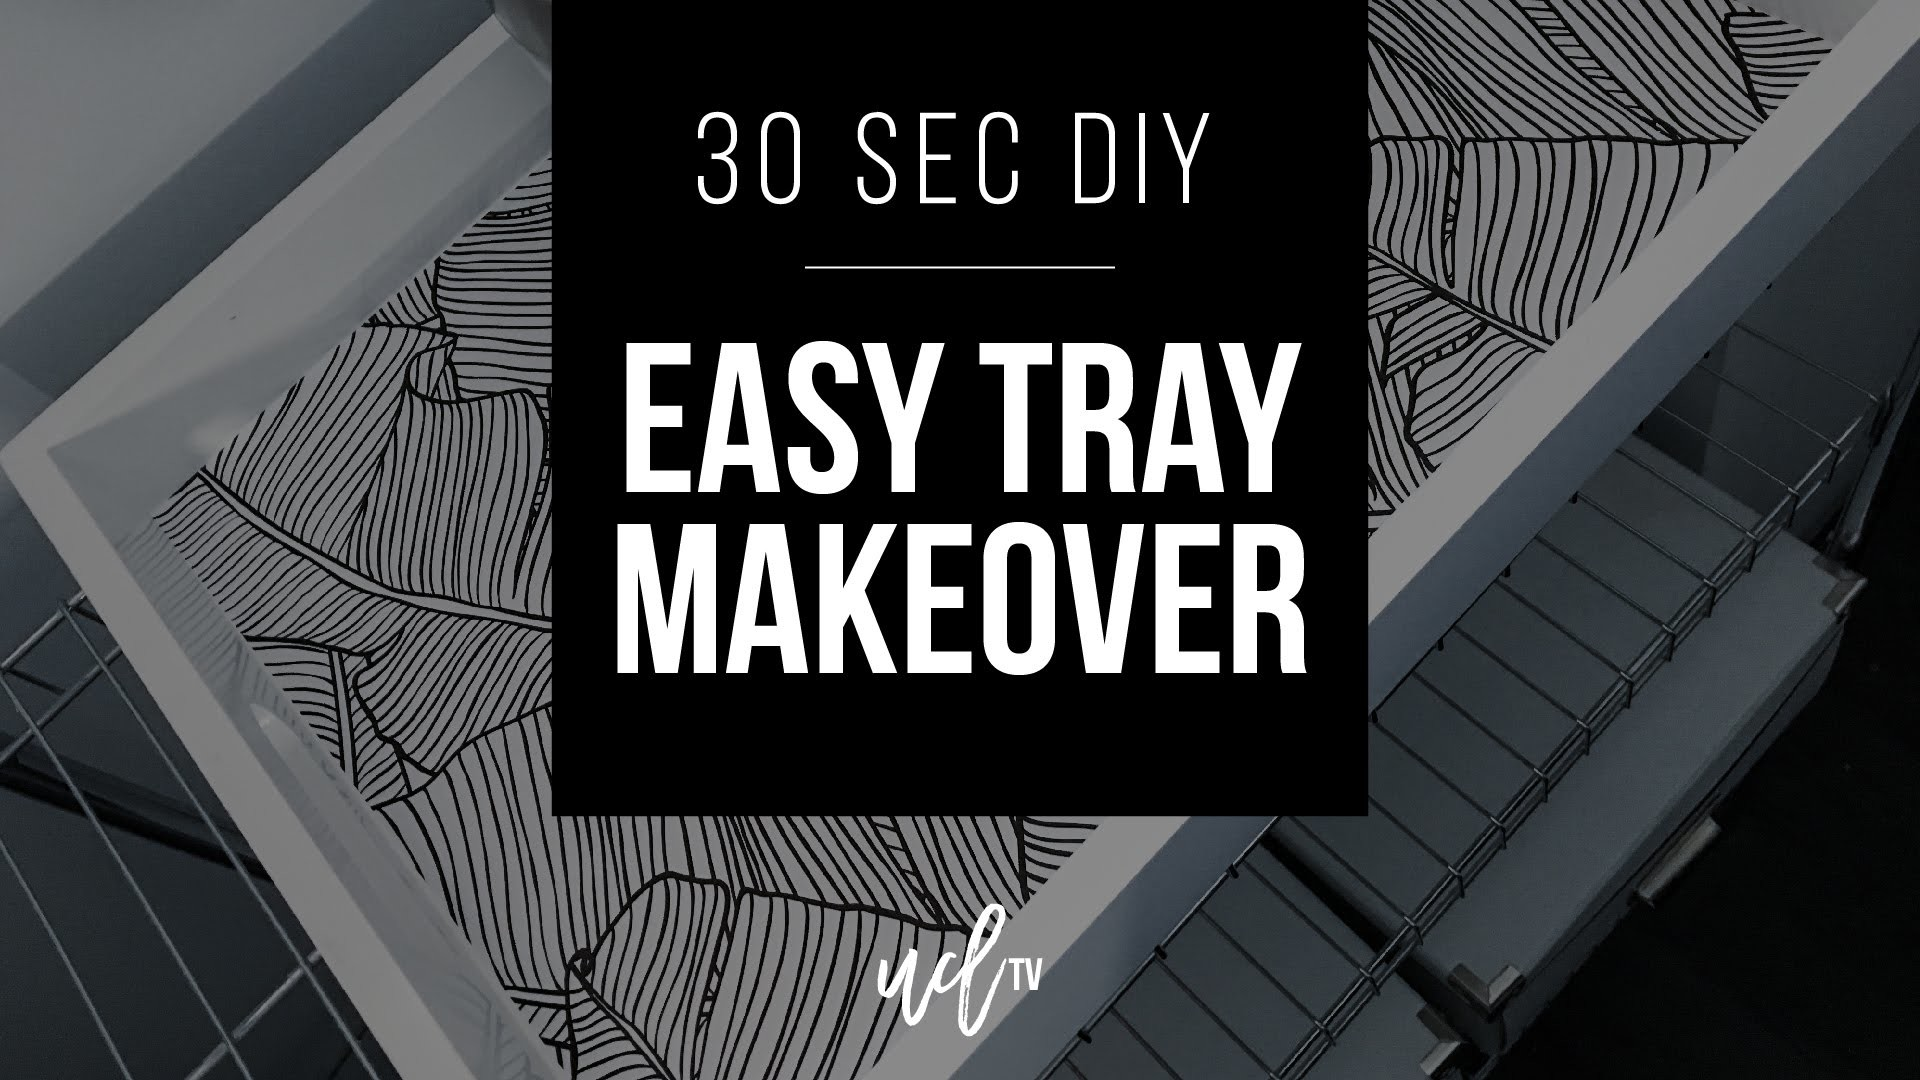 1920x1080 30 Second DIY: Easy Tray Makeover With Wallpaper